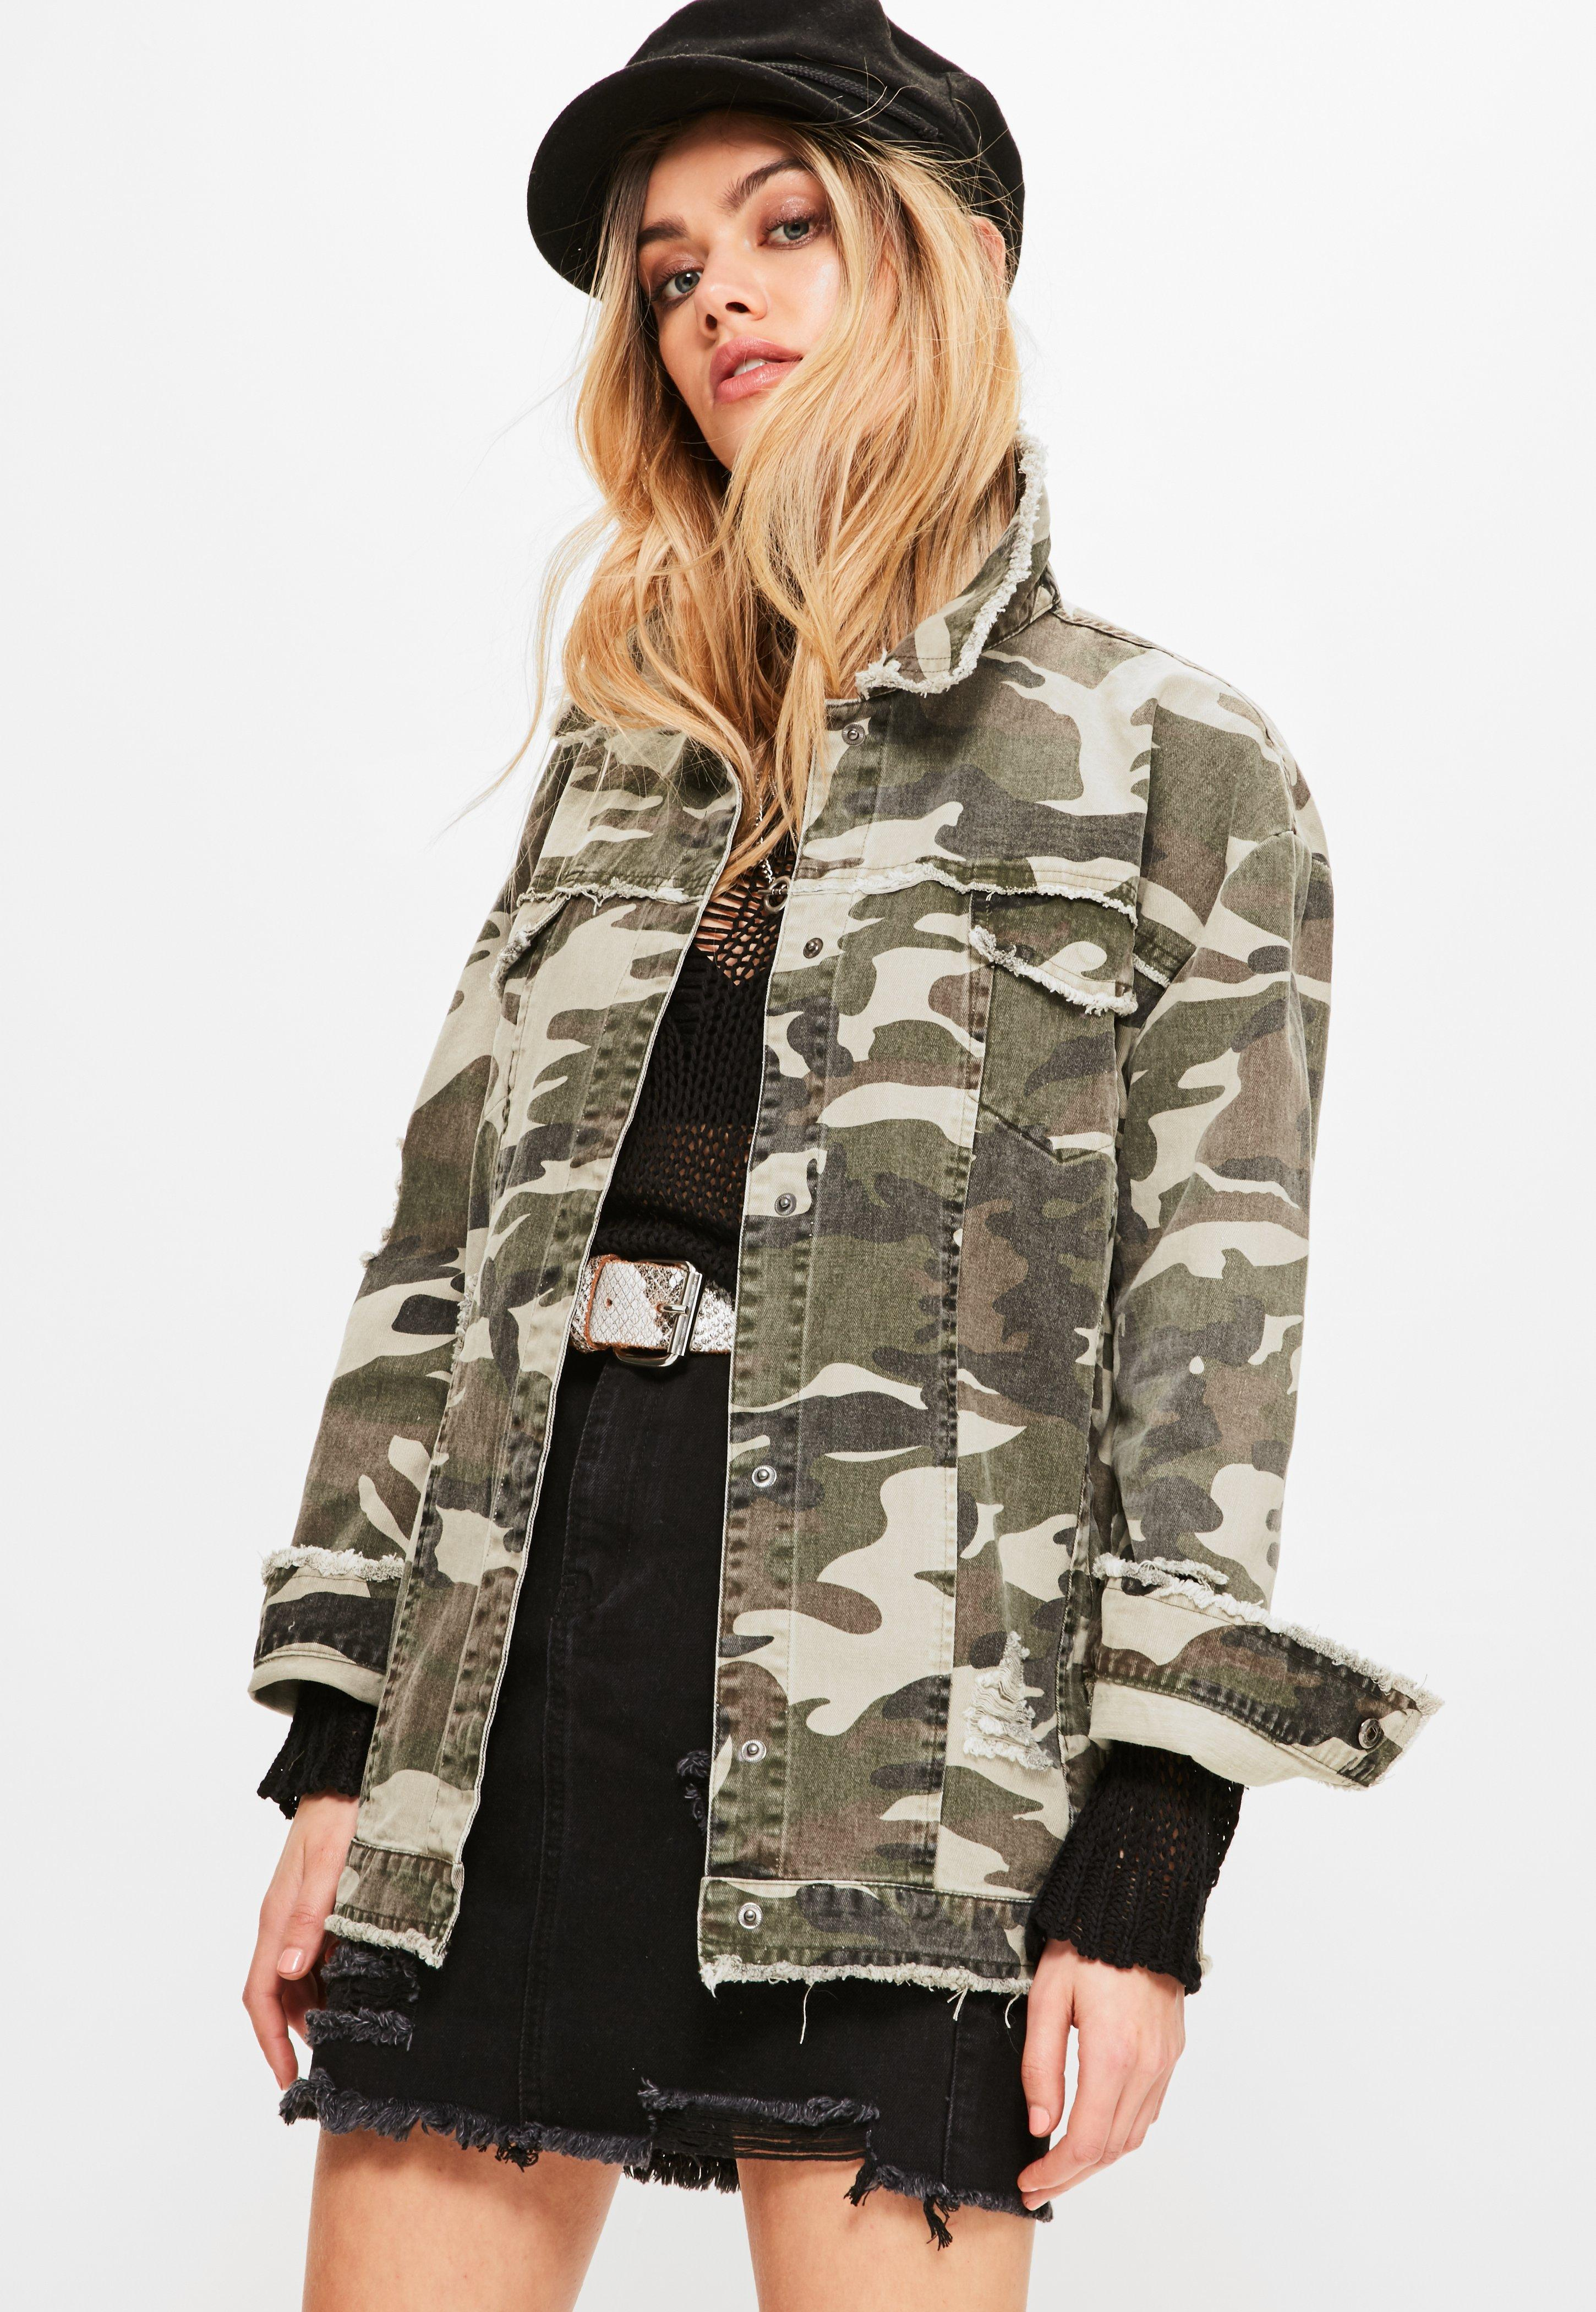 Militaire Nike Camouflage C0wqpaw1a Femme Veste Homme hrstQd